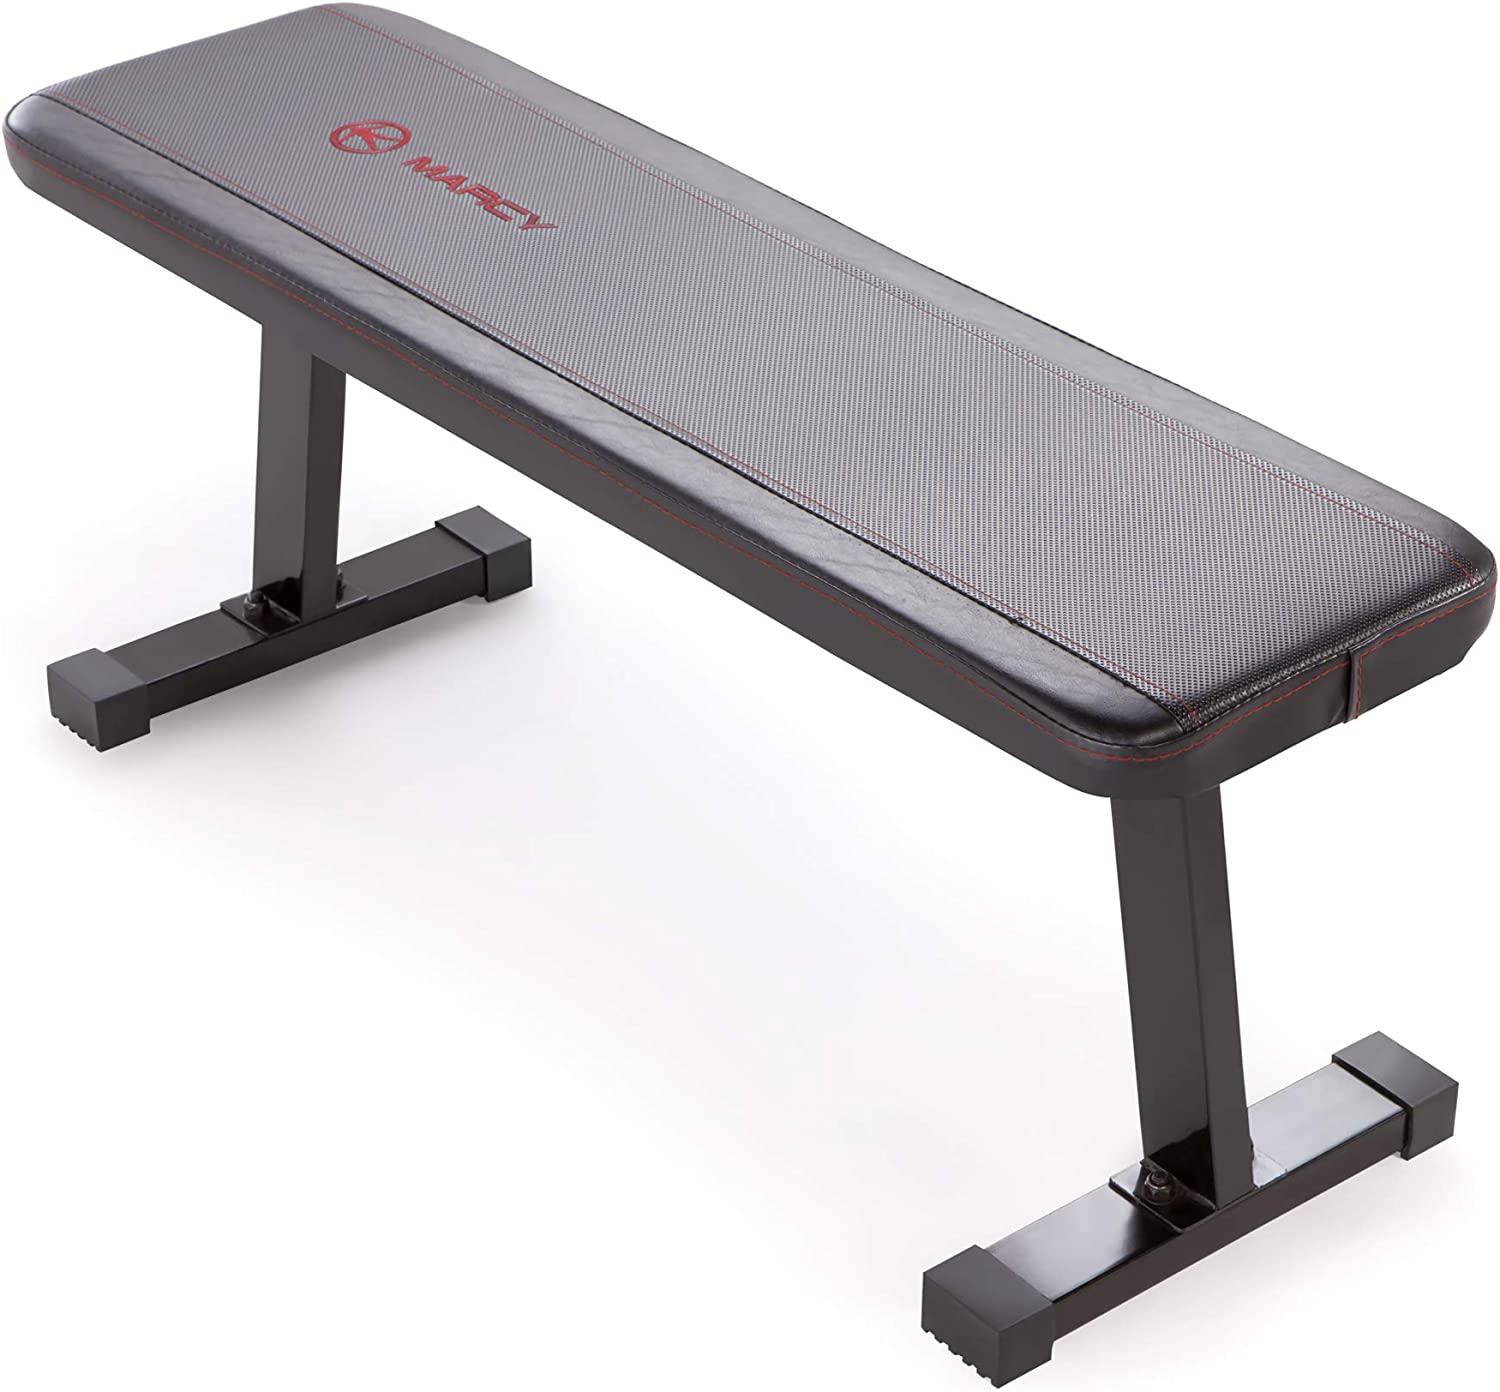 Marcy Flat Utility 600 lbs Capacity Weight Bench $59.29 Coupon